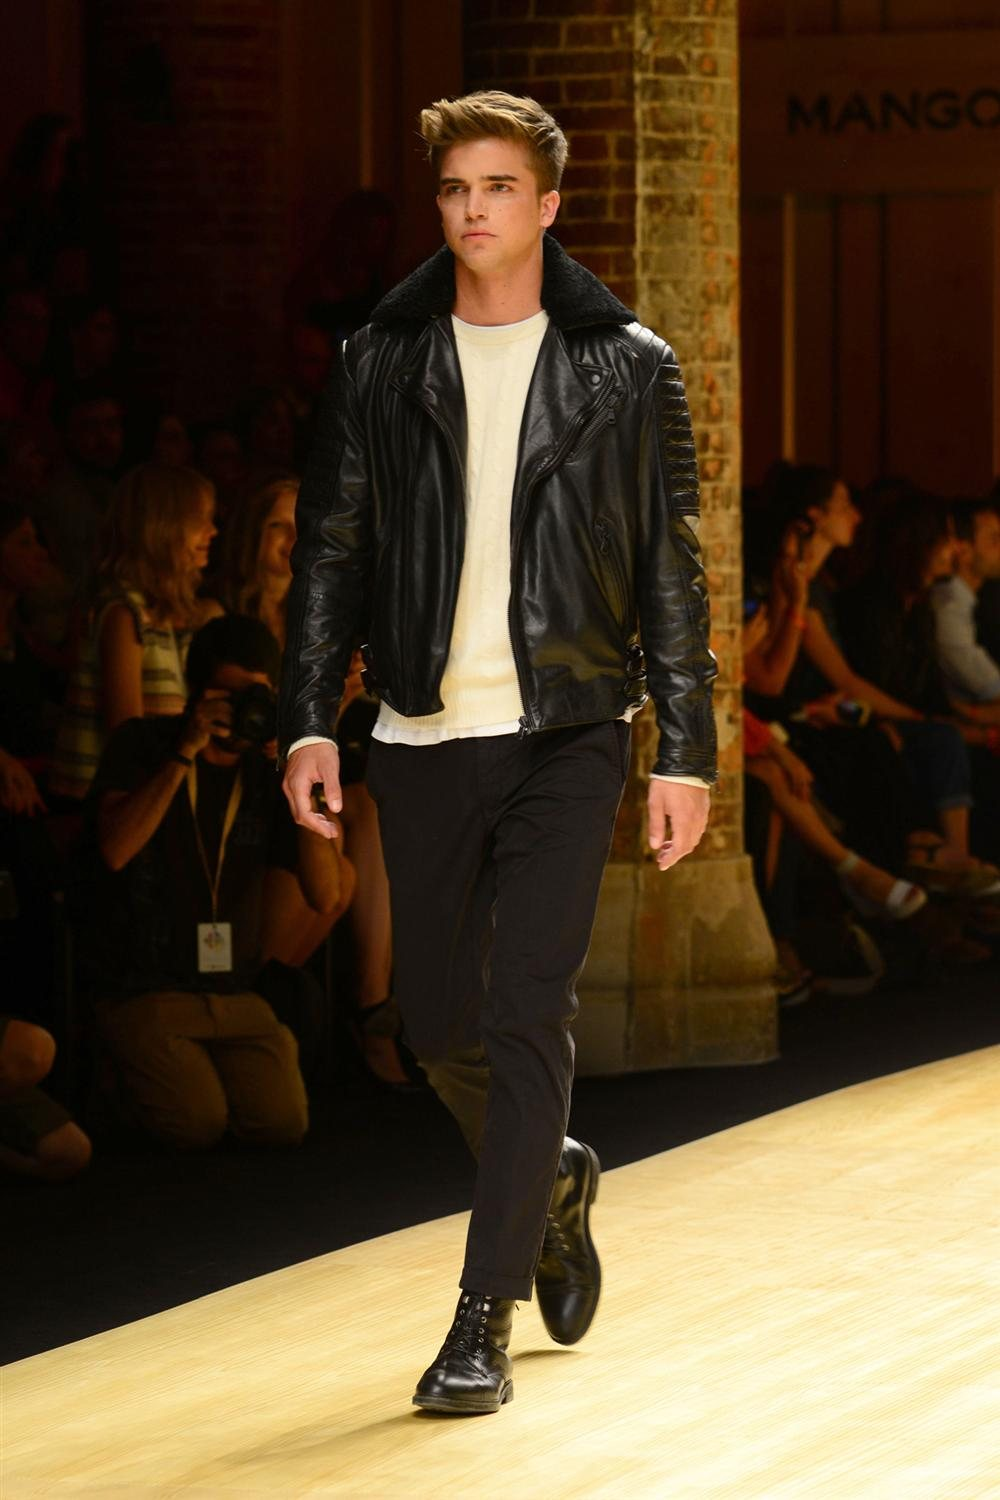 River Viiperi. Mango Fashion Show